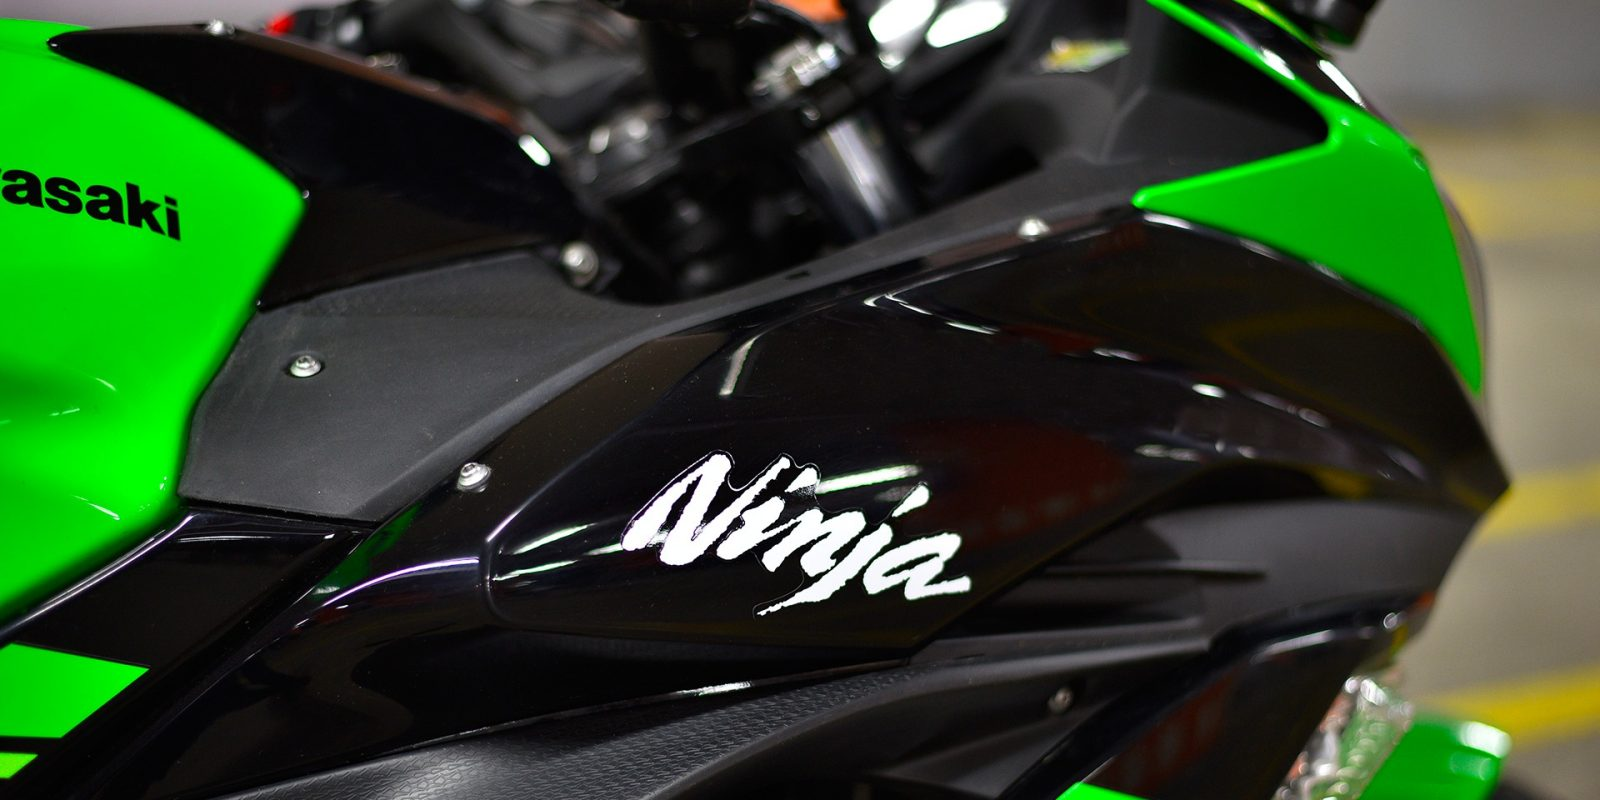 Kawasaki may be working on an electric Ninja motorcycle with swappable batteries